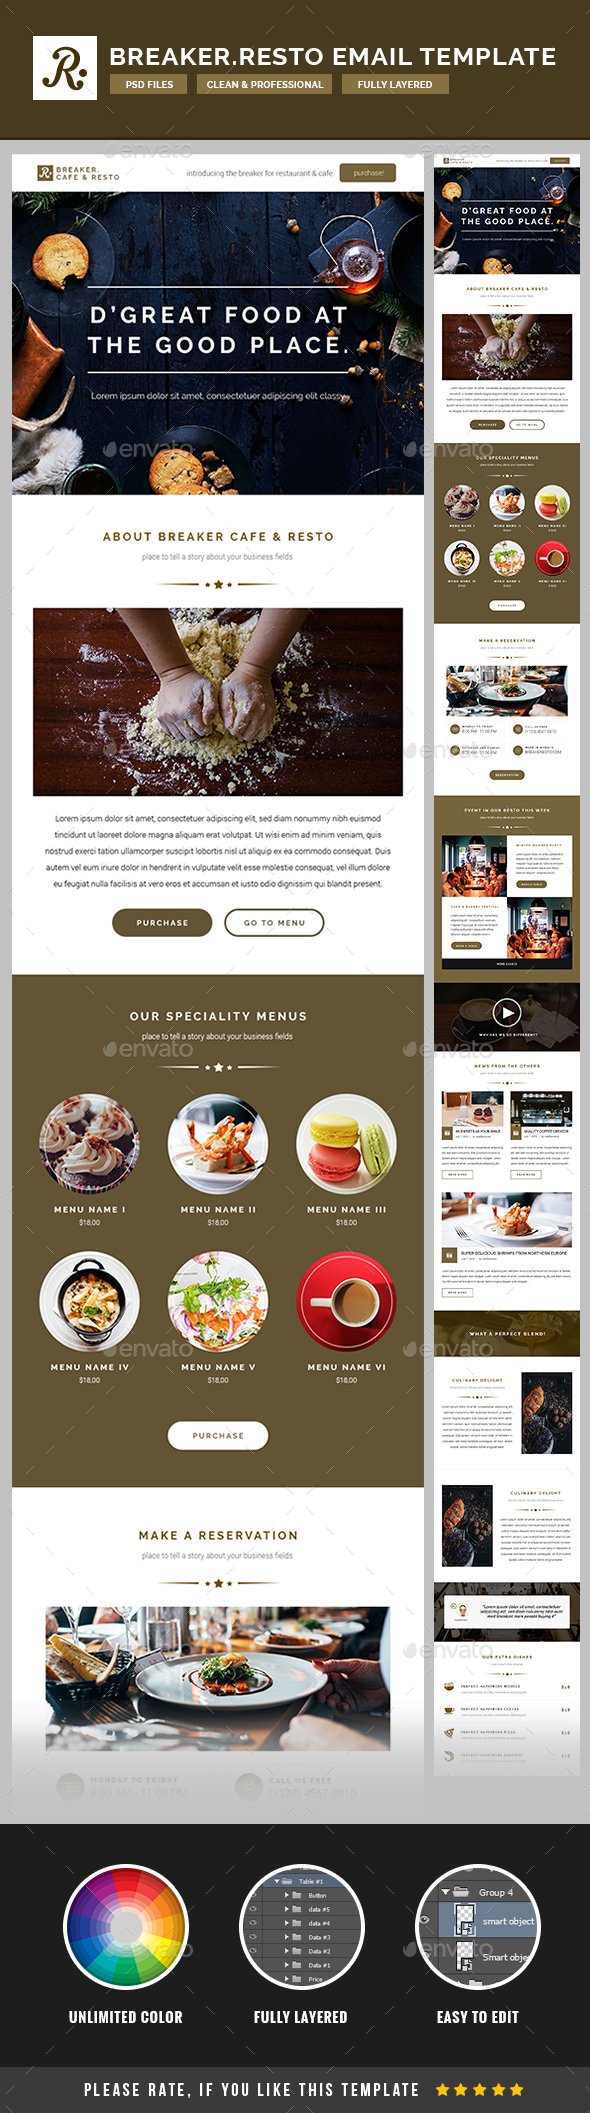 Breaker – Cafe/ Resto Email Template PSD | E-newsletters